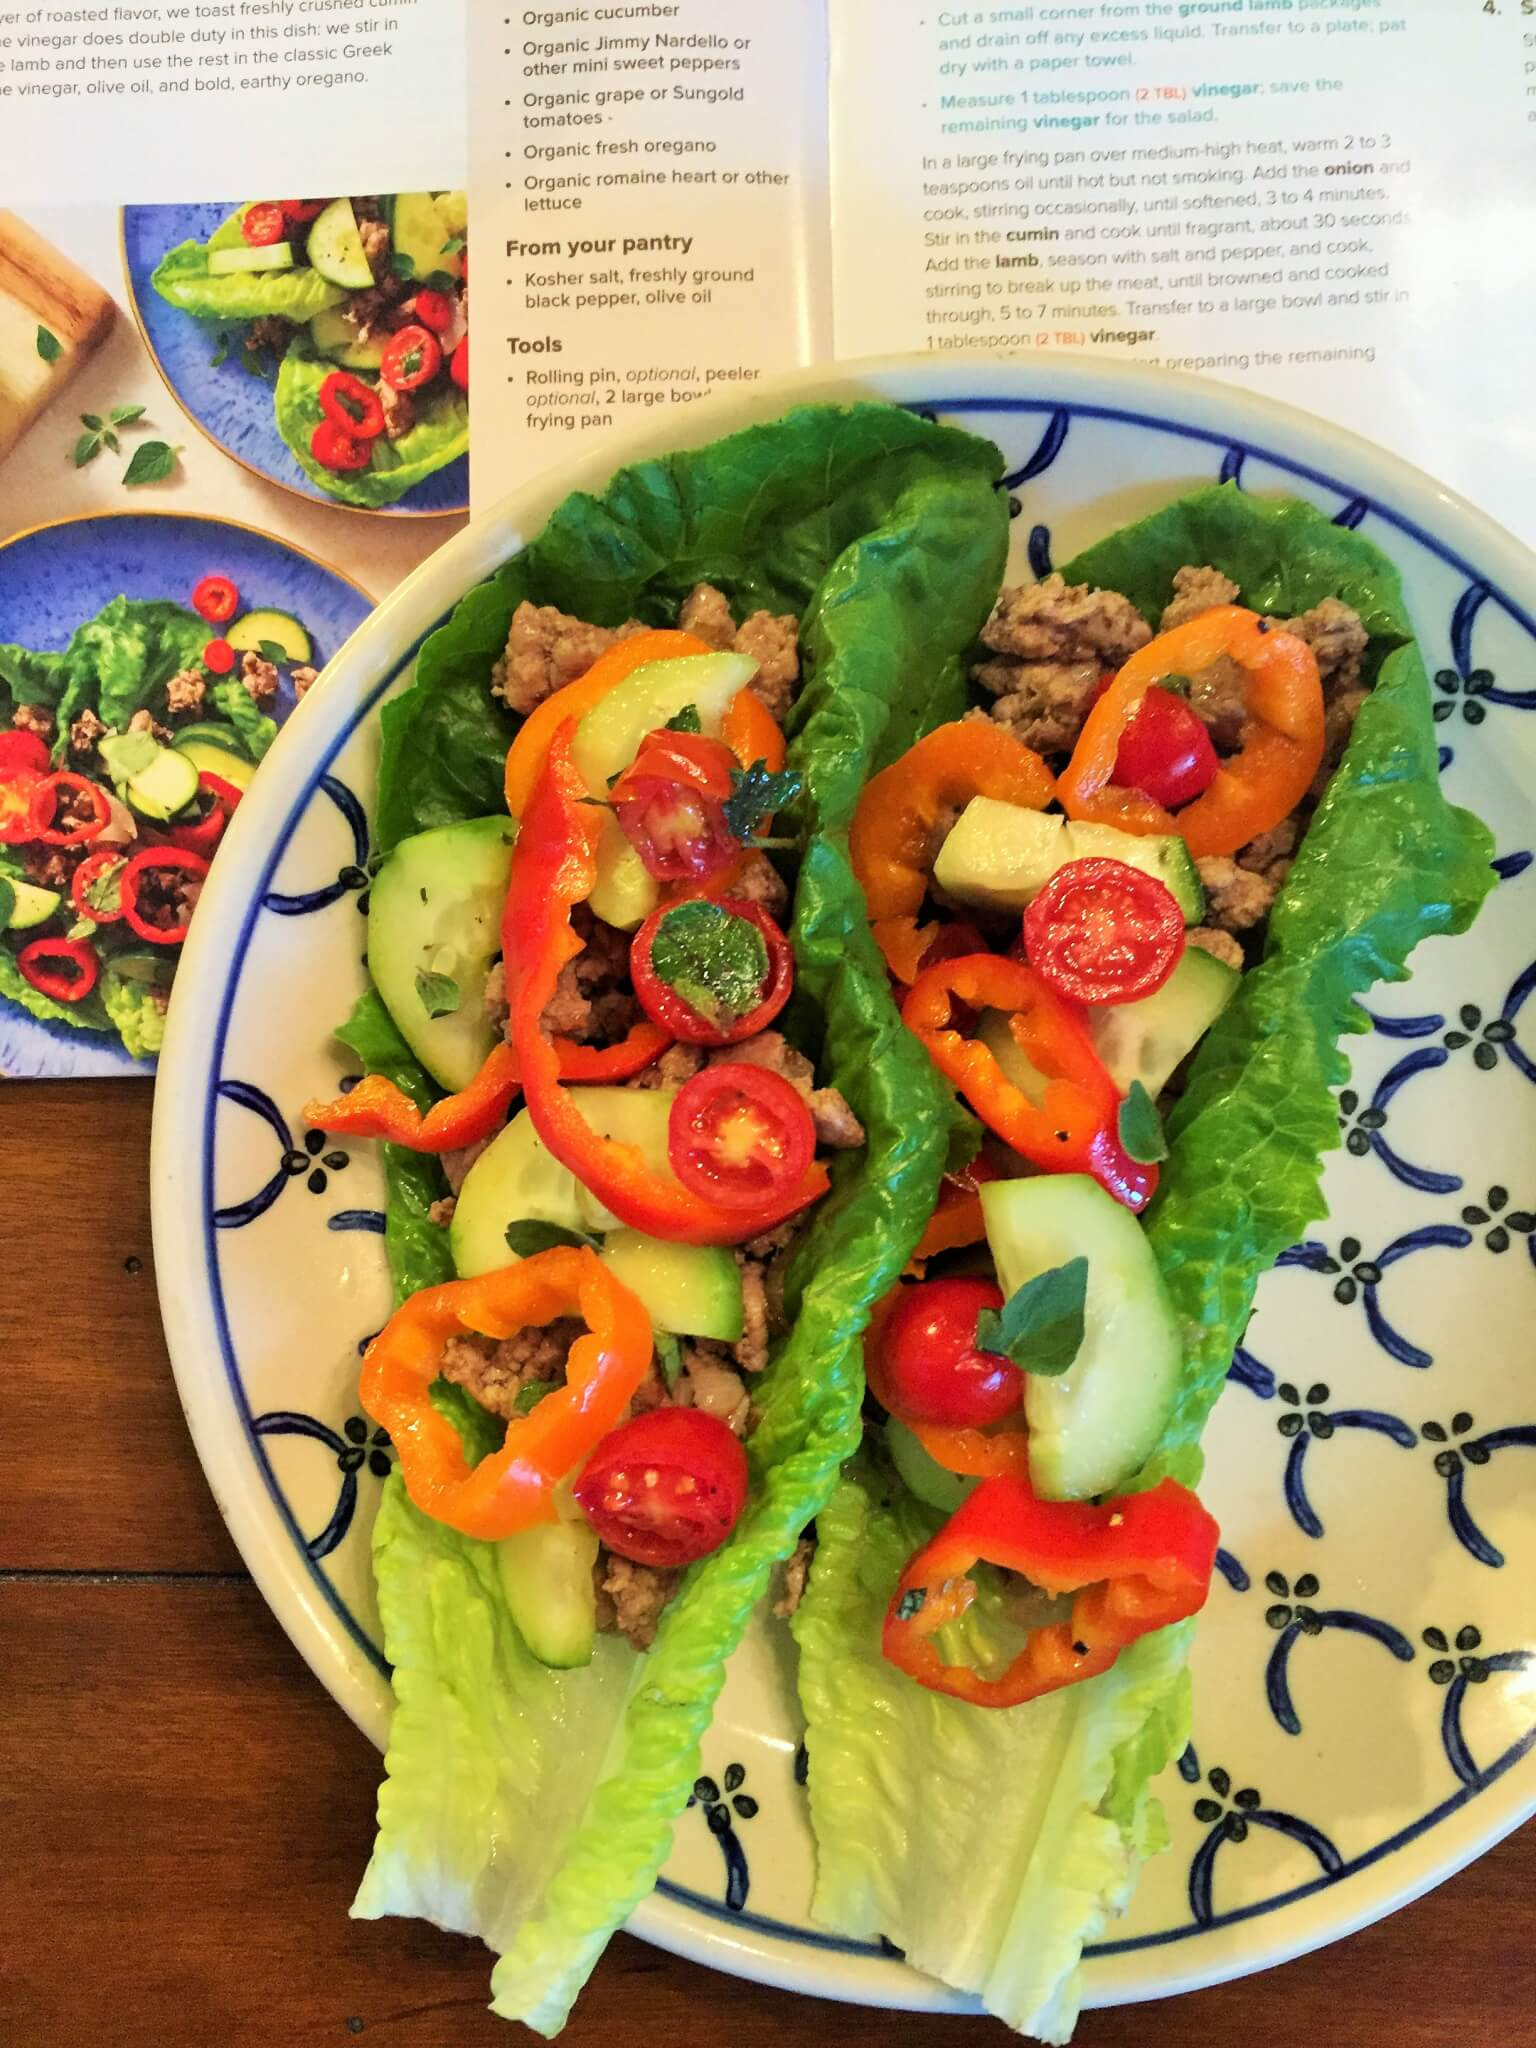 Sun Basket Mediterranean Lettuce Wraps - My Sun Basket Review